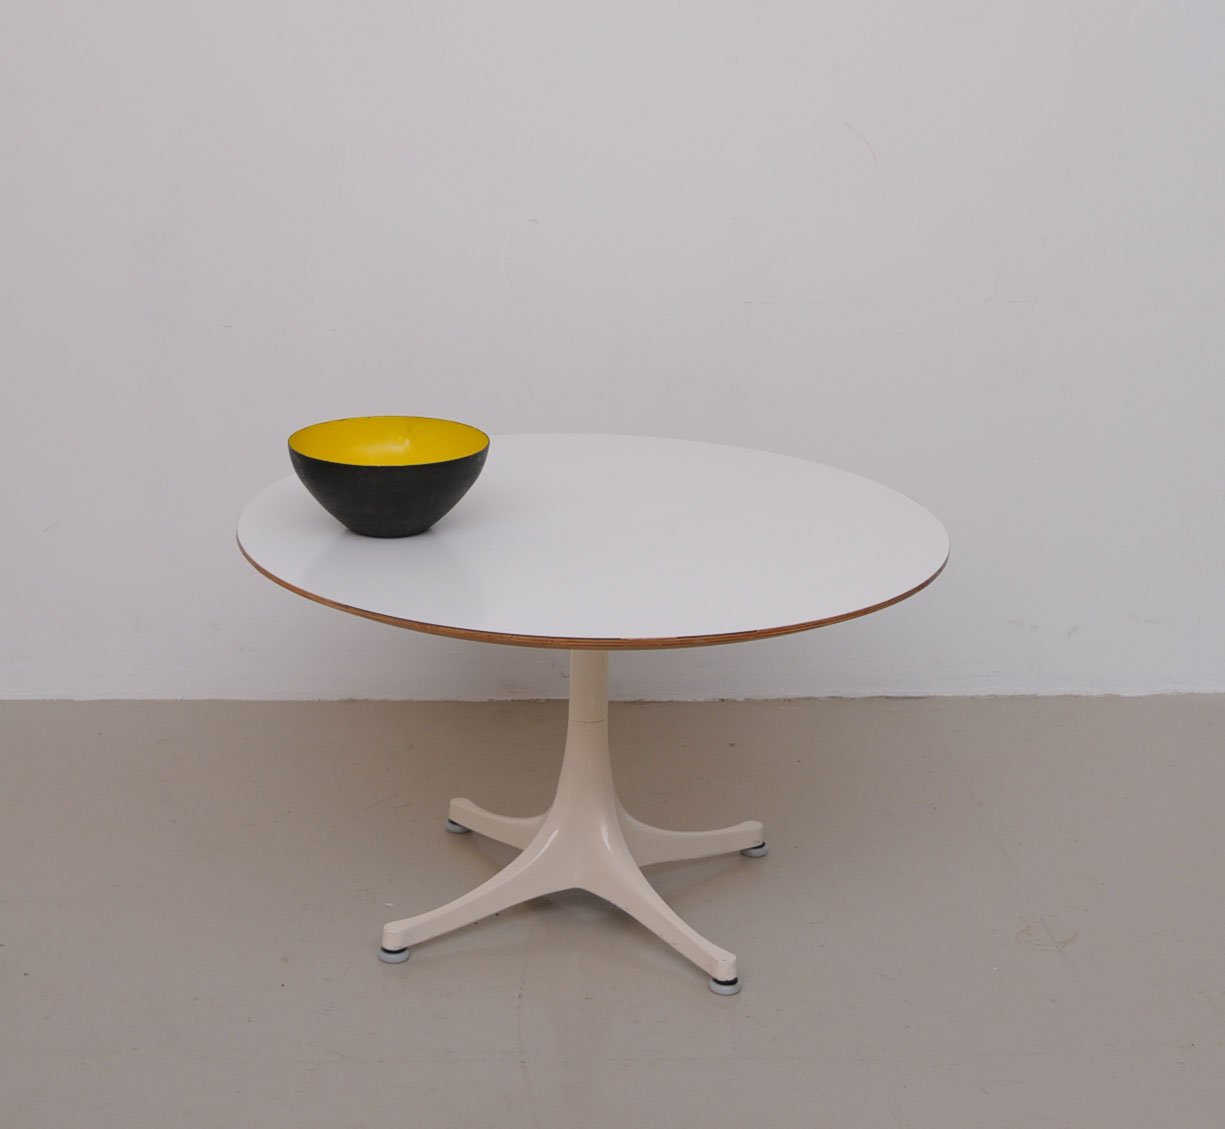 Awesome Vintage Coffee Table By George Nelson For Vitra